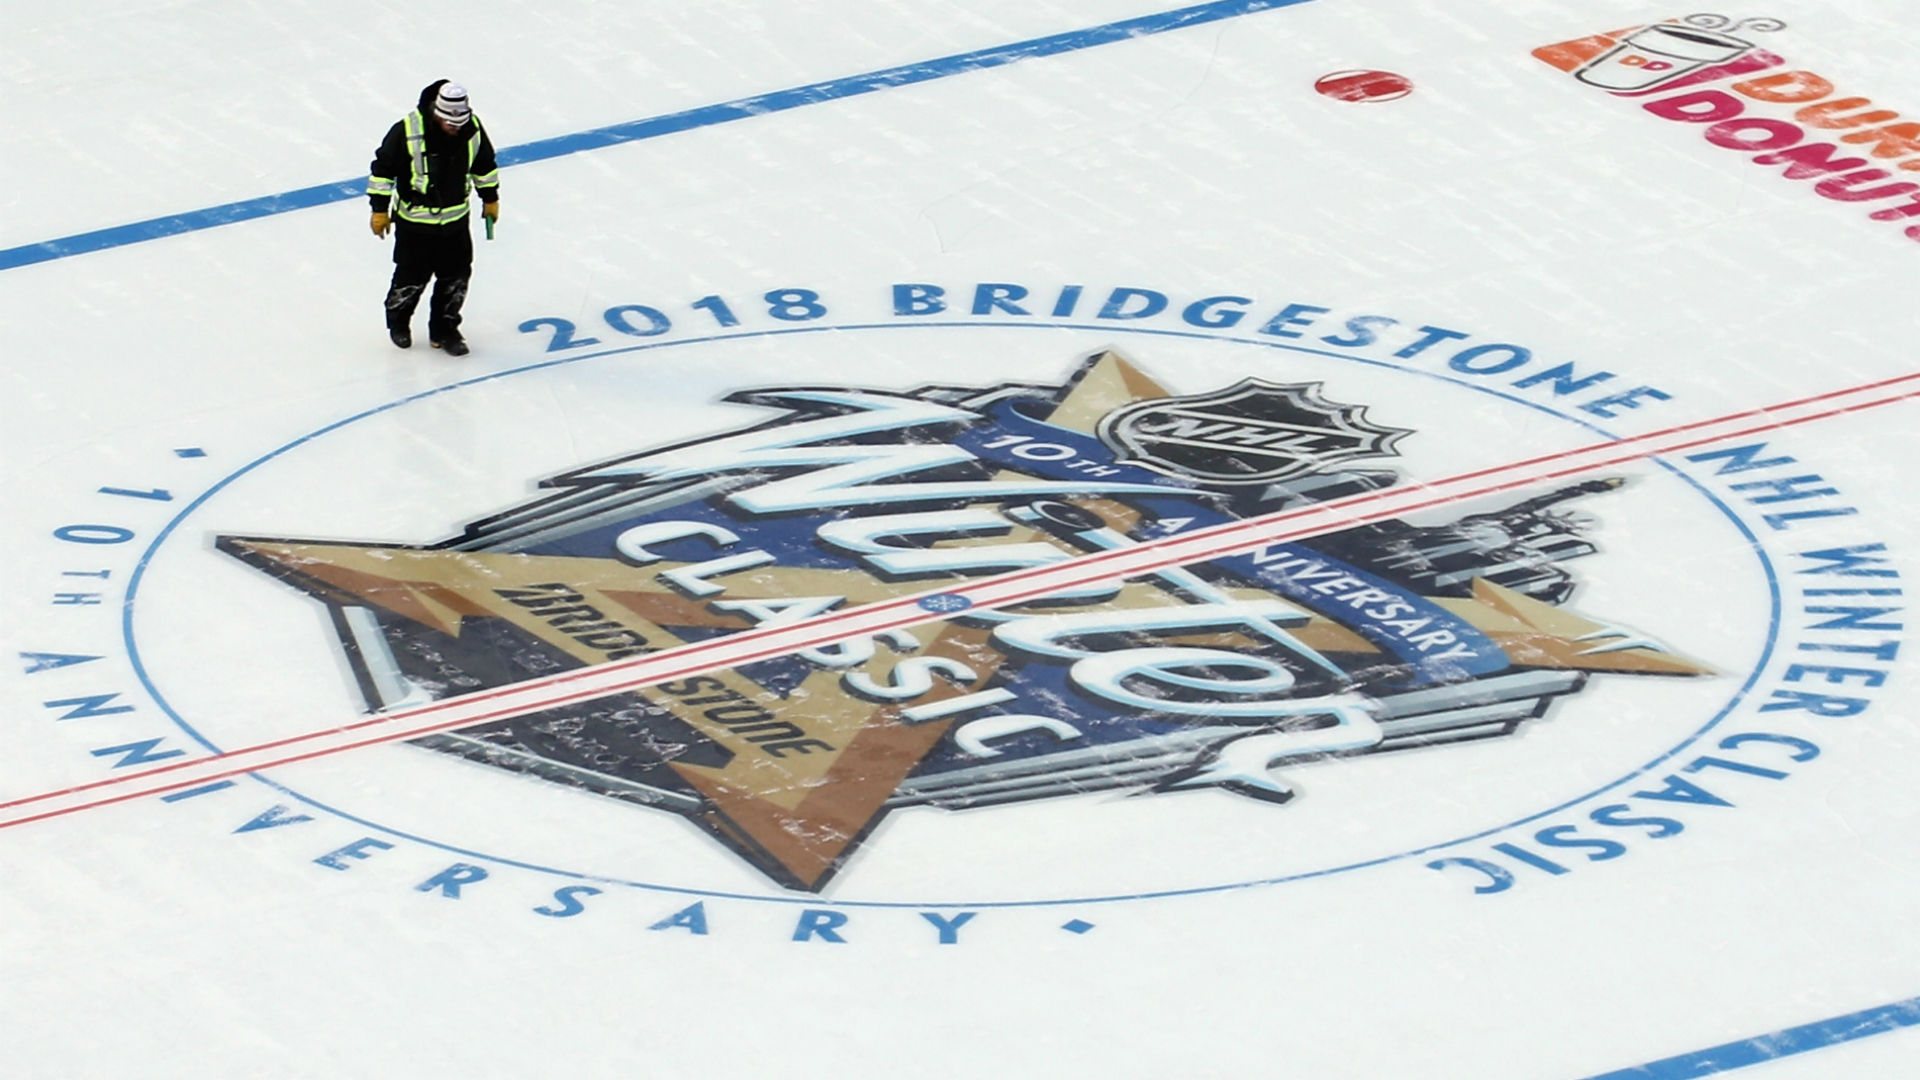 NHL Winter Classic 2018: Weather a cool, sunny outlook for Sabres-Rangers